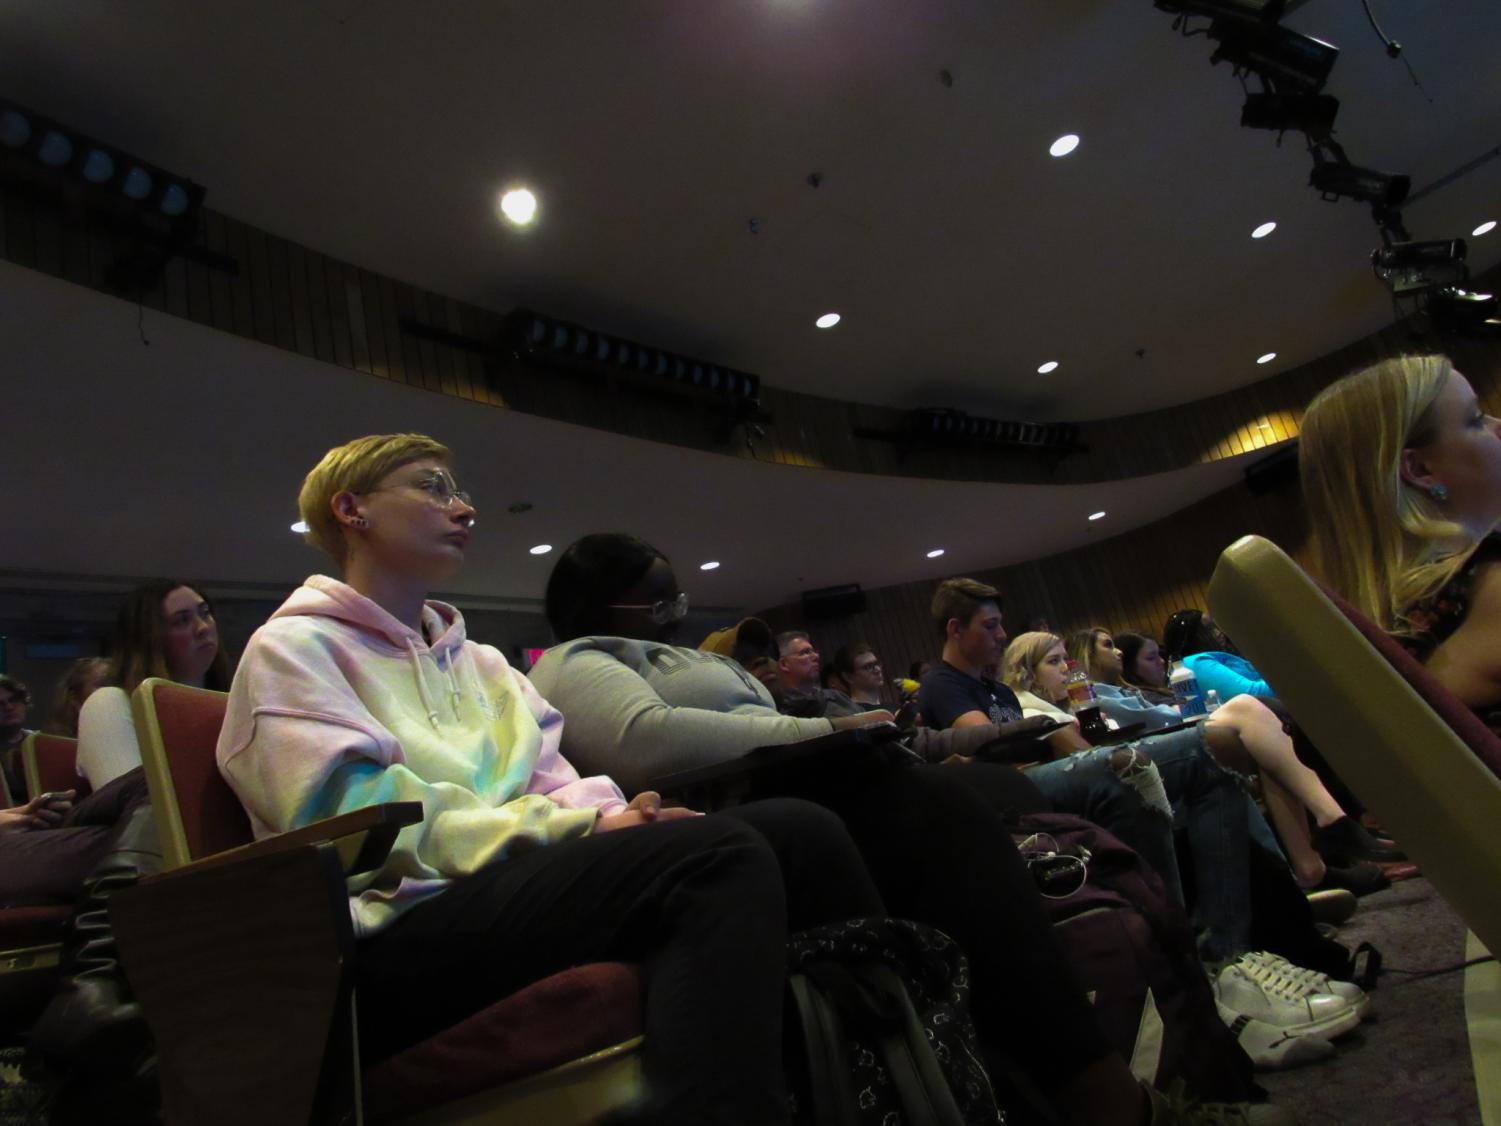 The auditorium was almost packed full with students and attendees for the Soapbox Sisters event.